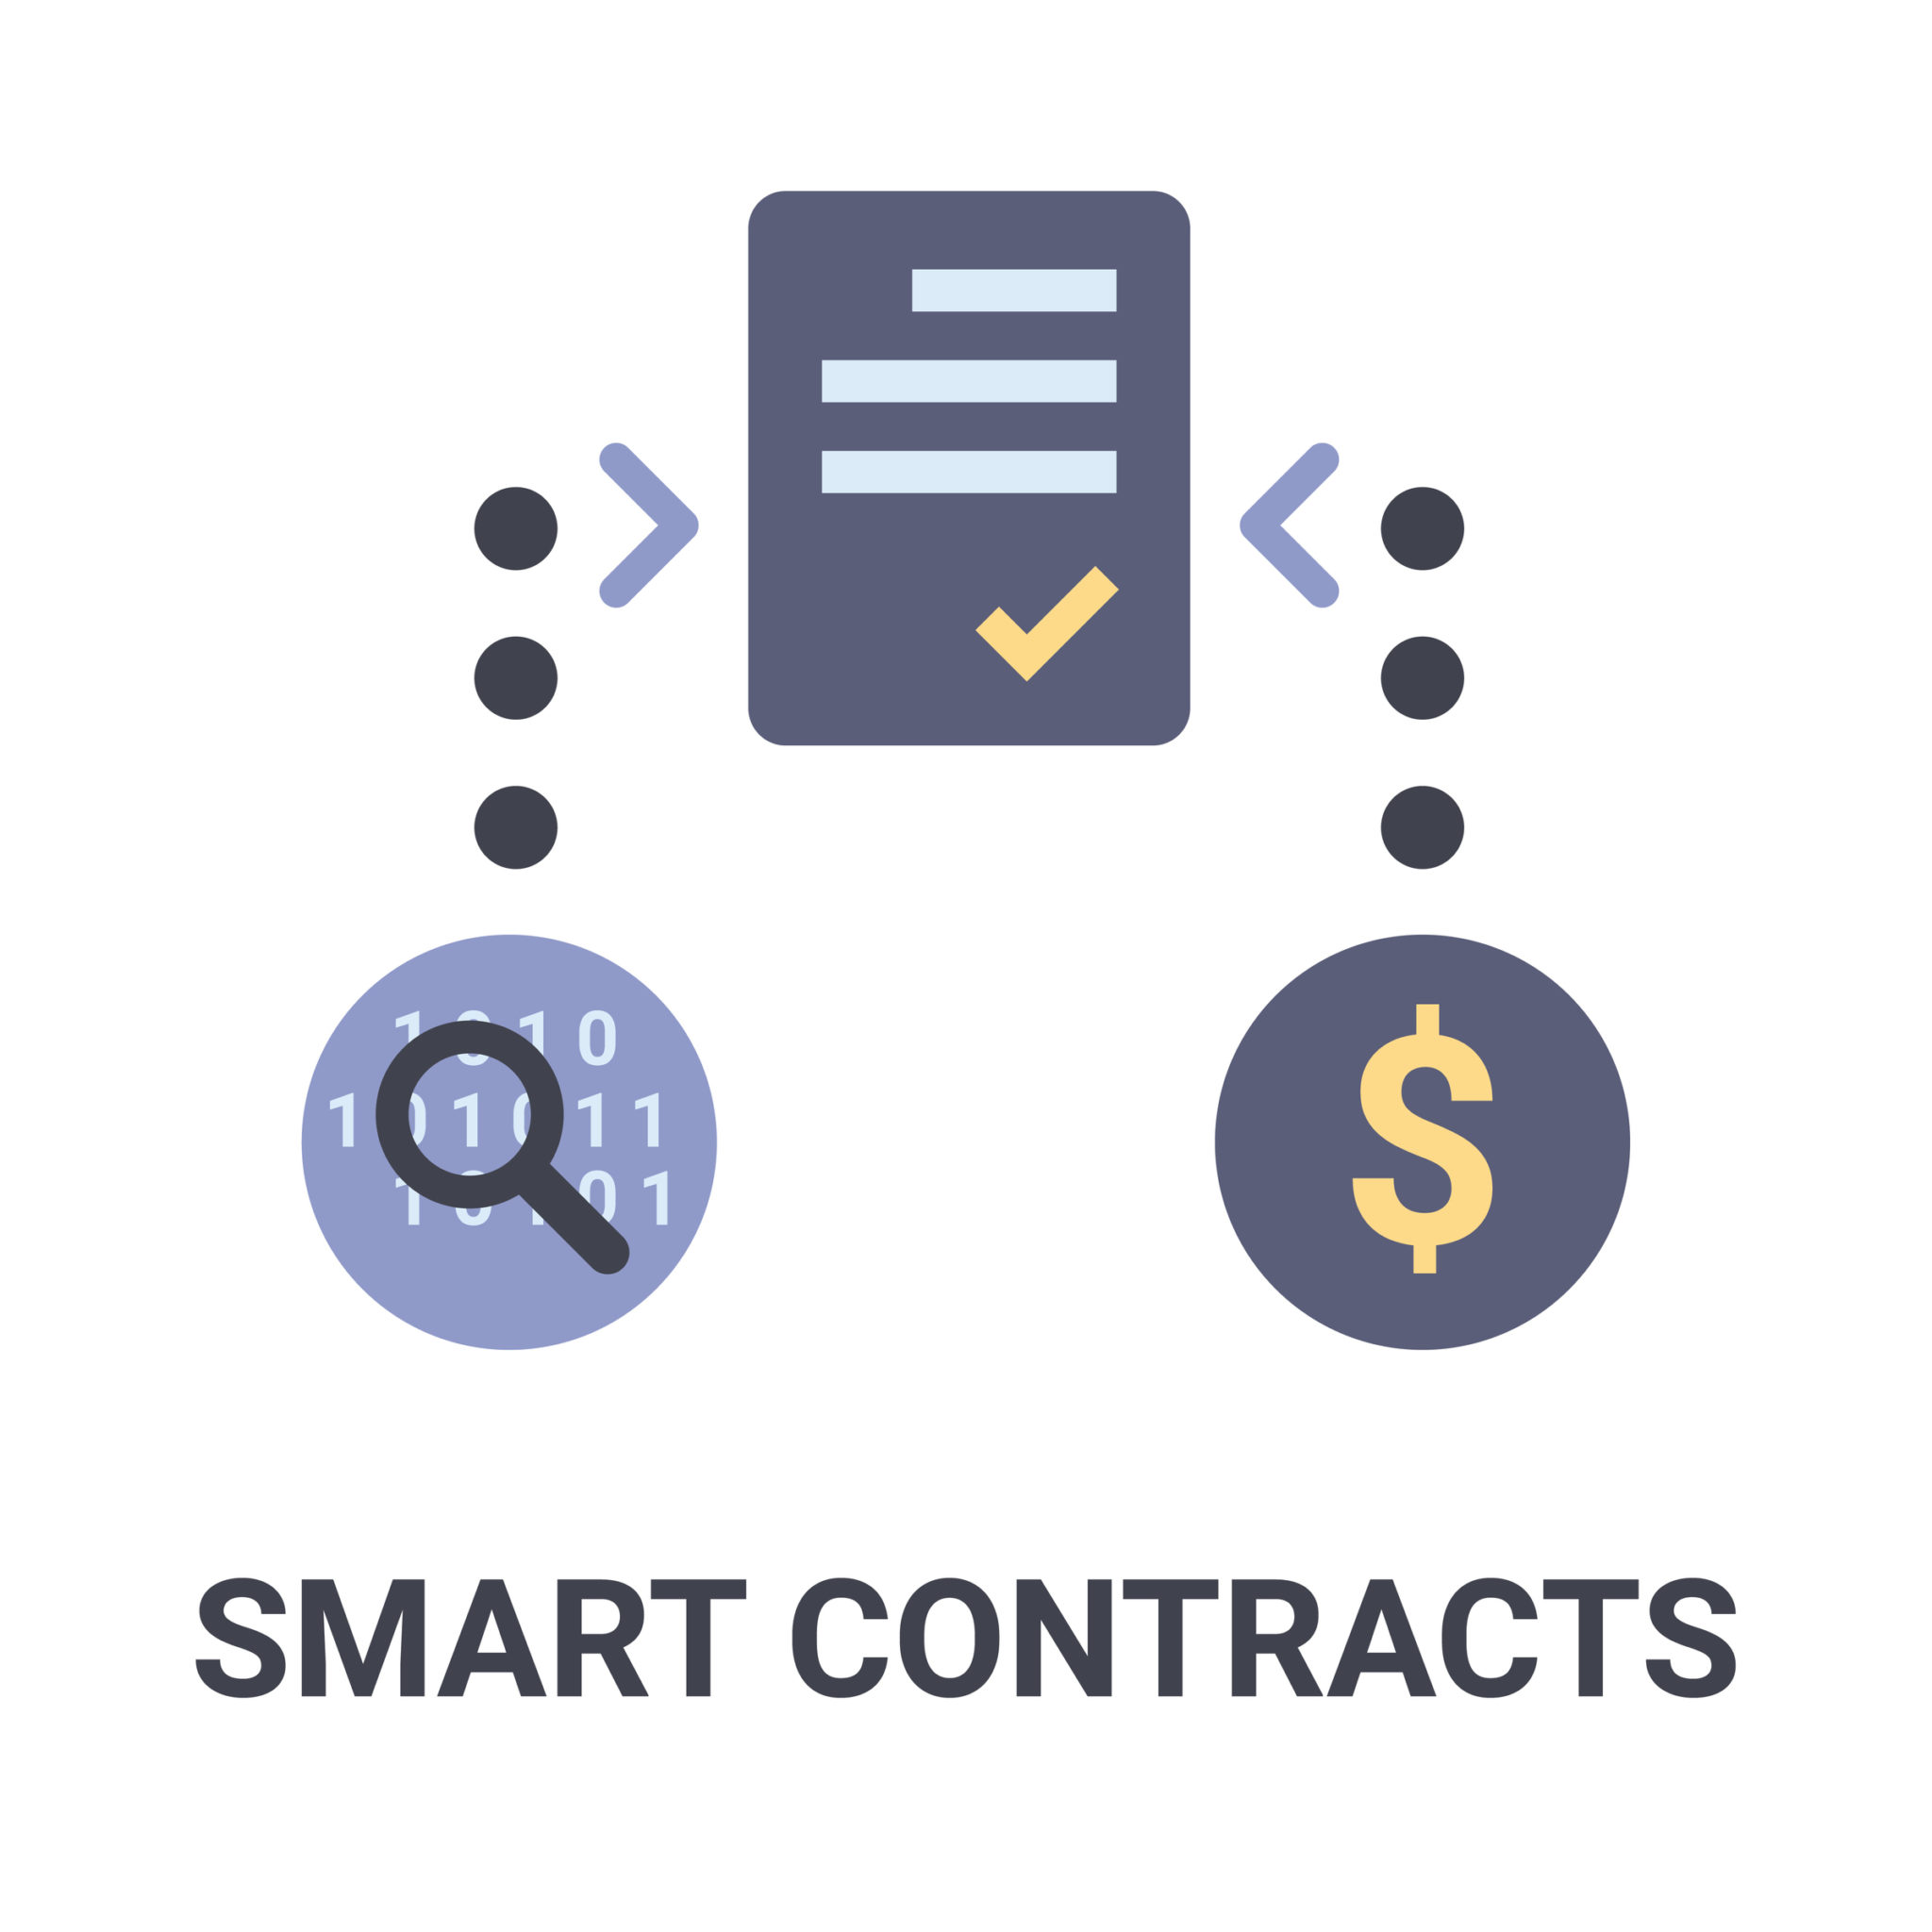 The future of smart contracts